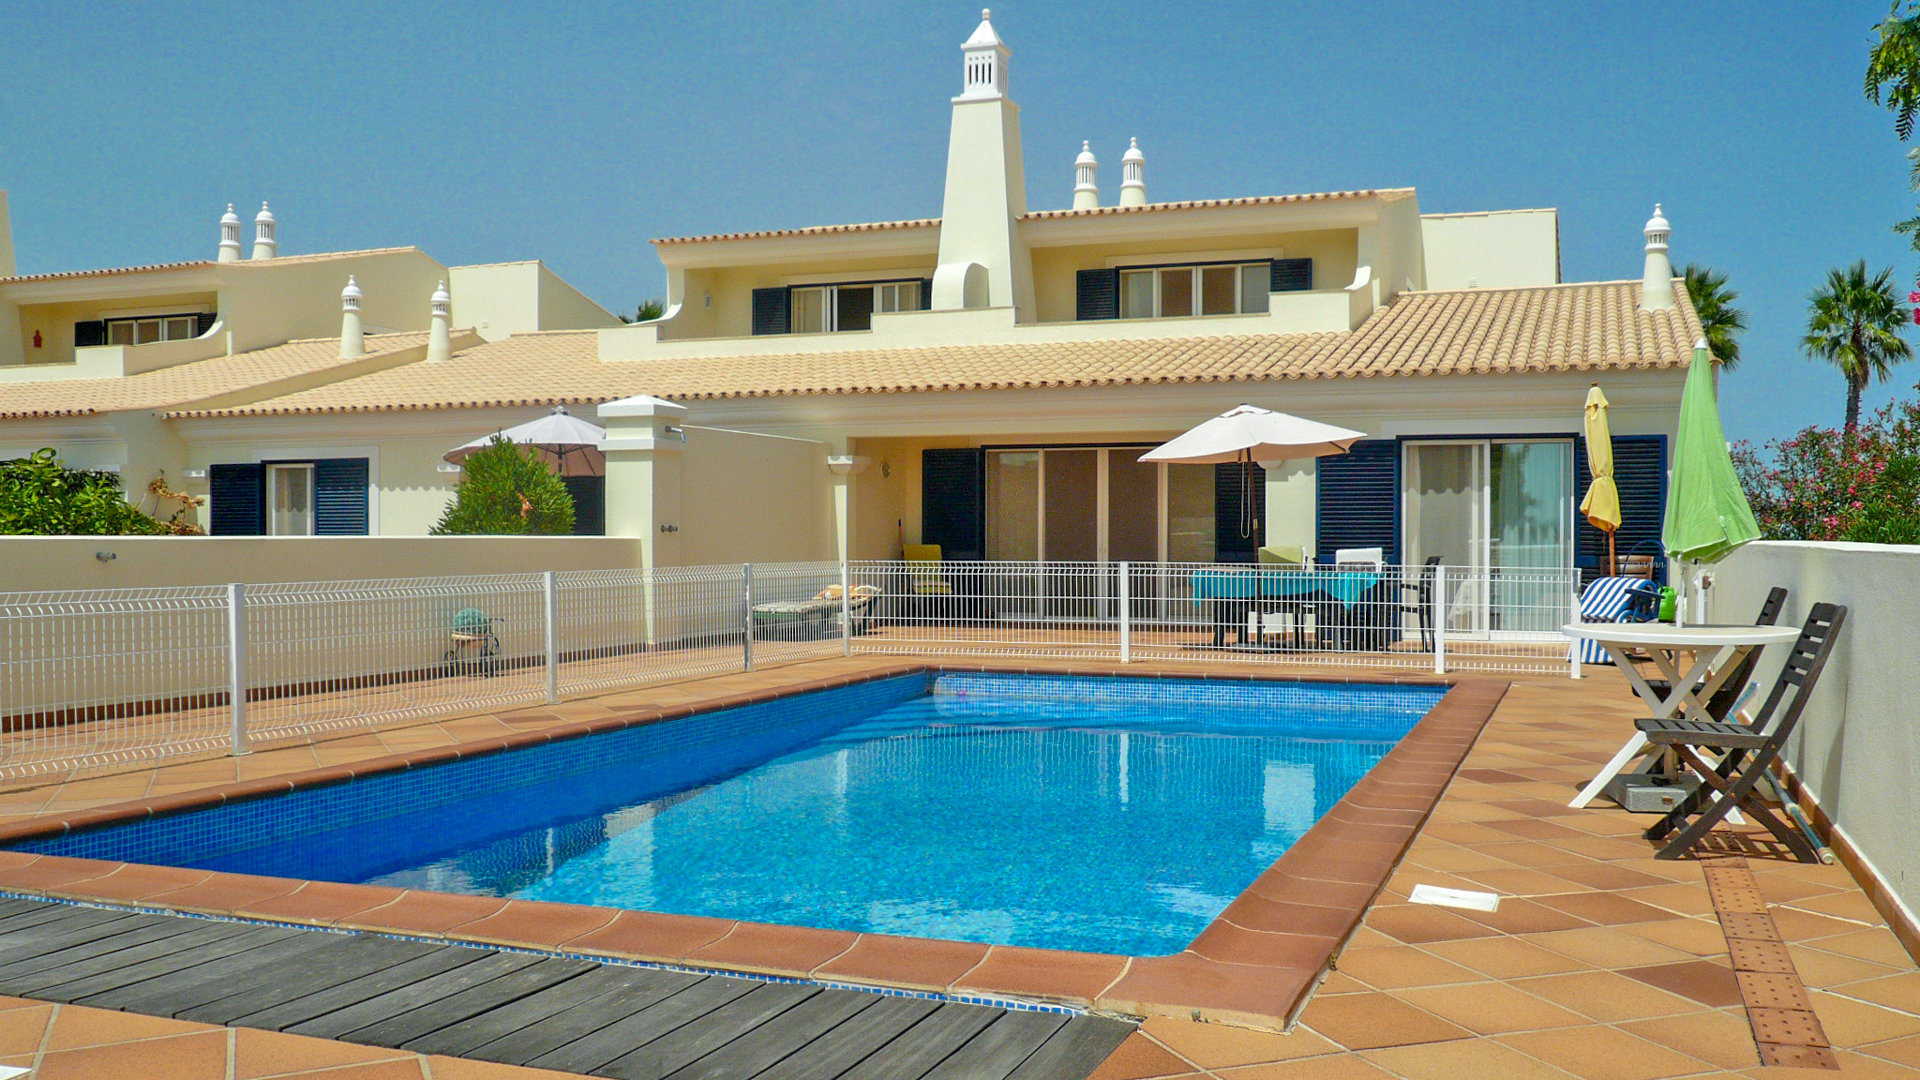 3 Bedroom Linked villa with pool and sea views on a golf course, Castro Marim | S1741